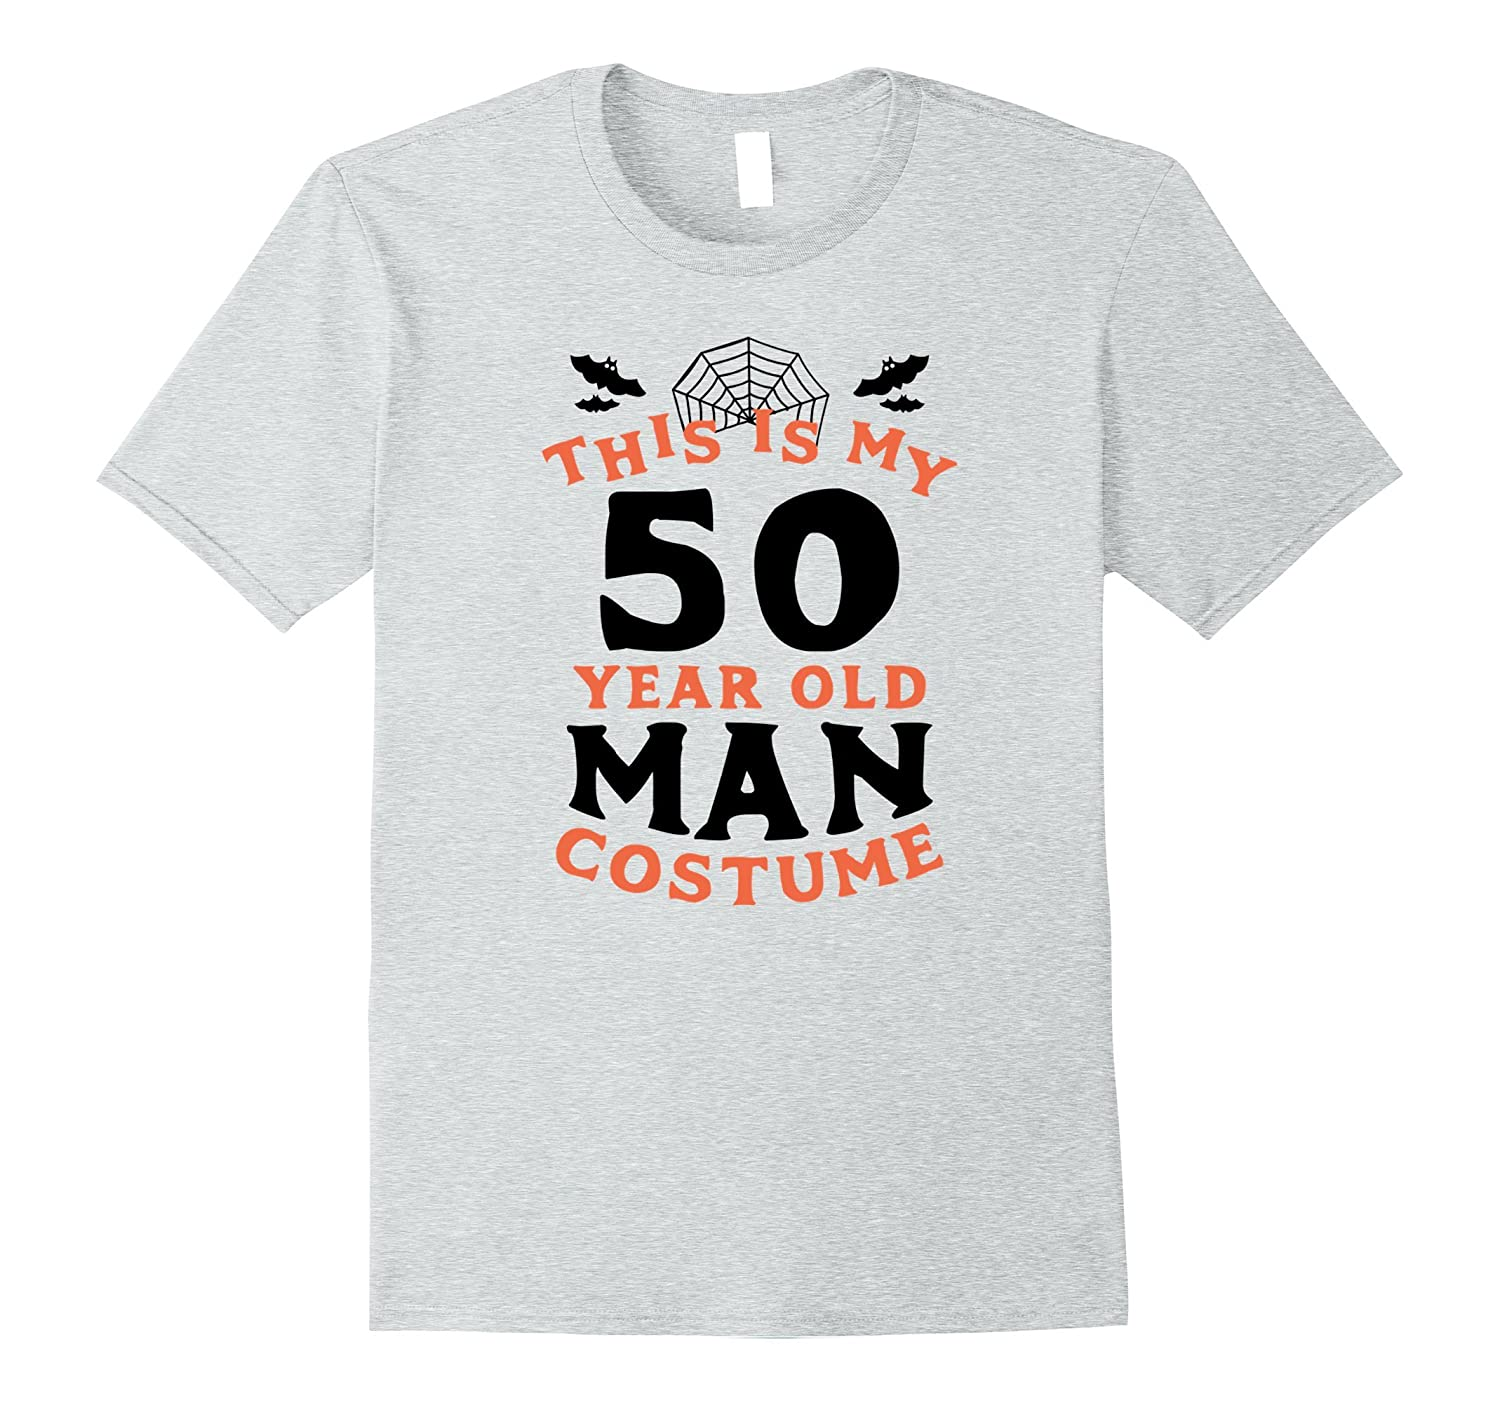 50 Year Old Man Costume - Funny Men's Halloween T-Shirt-T-Shirt